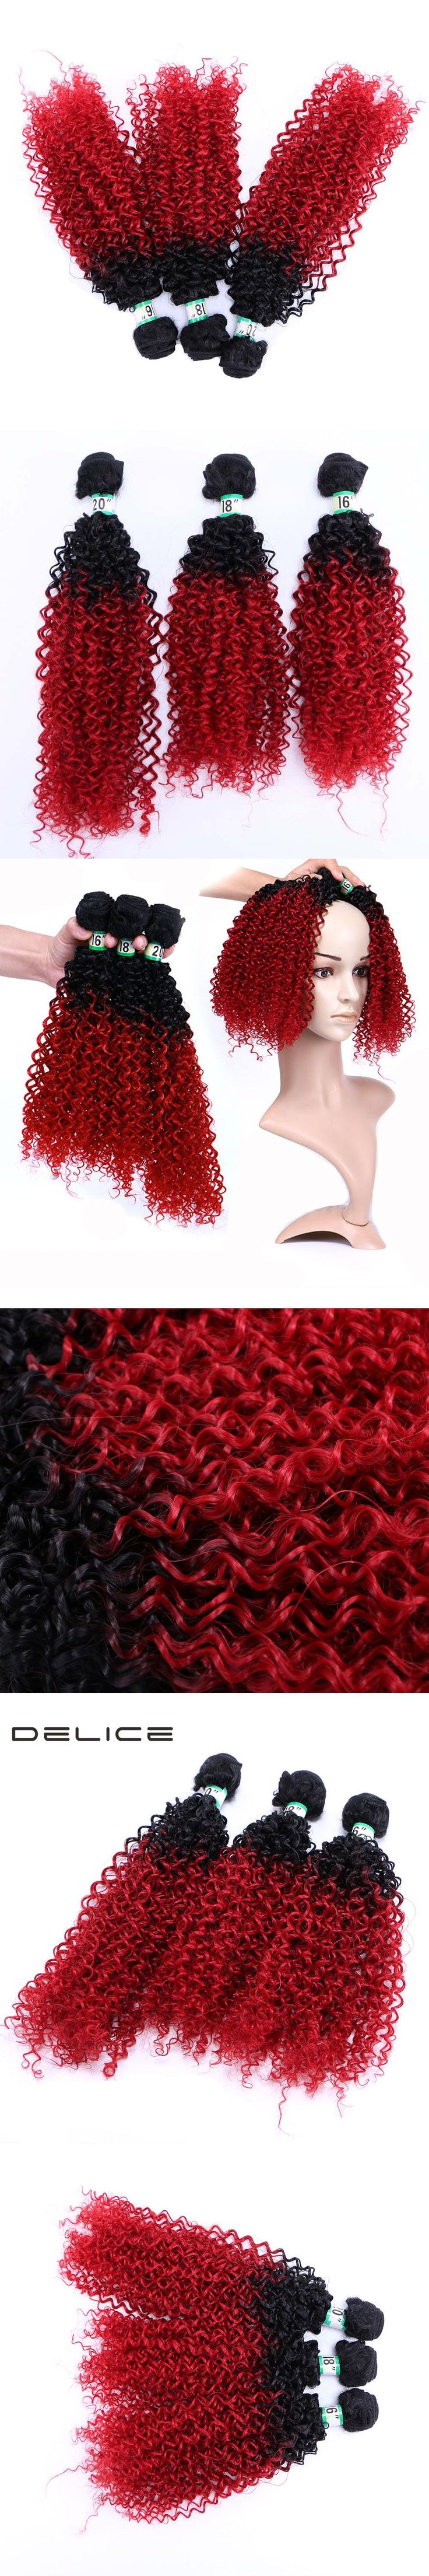 DELICE 3pcs/pack 16-20inch Kinky Curly Ombre Hair Weaving Black Red Synthetic Hair Extensions Weft Bundles For Black Women